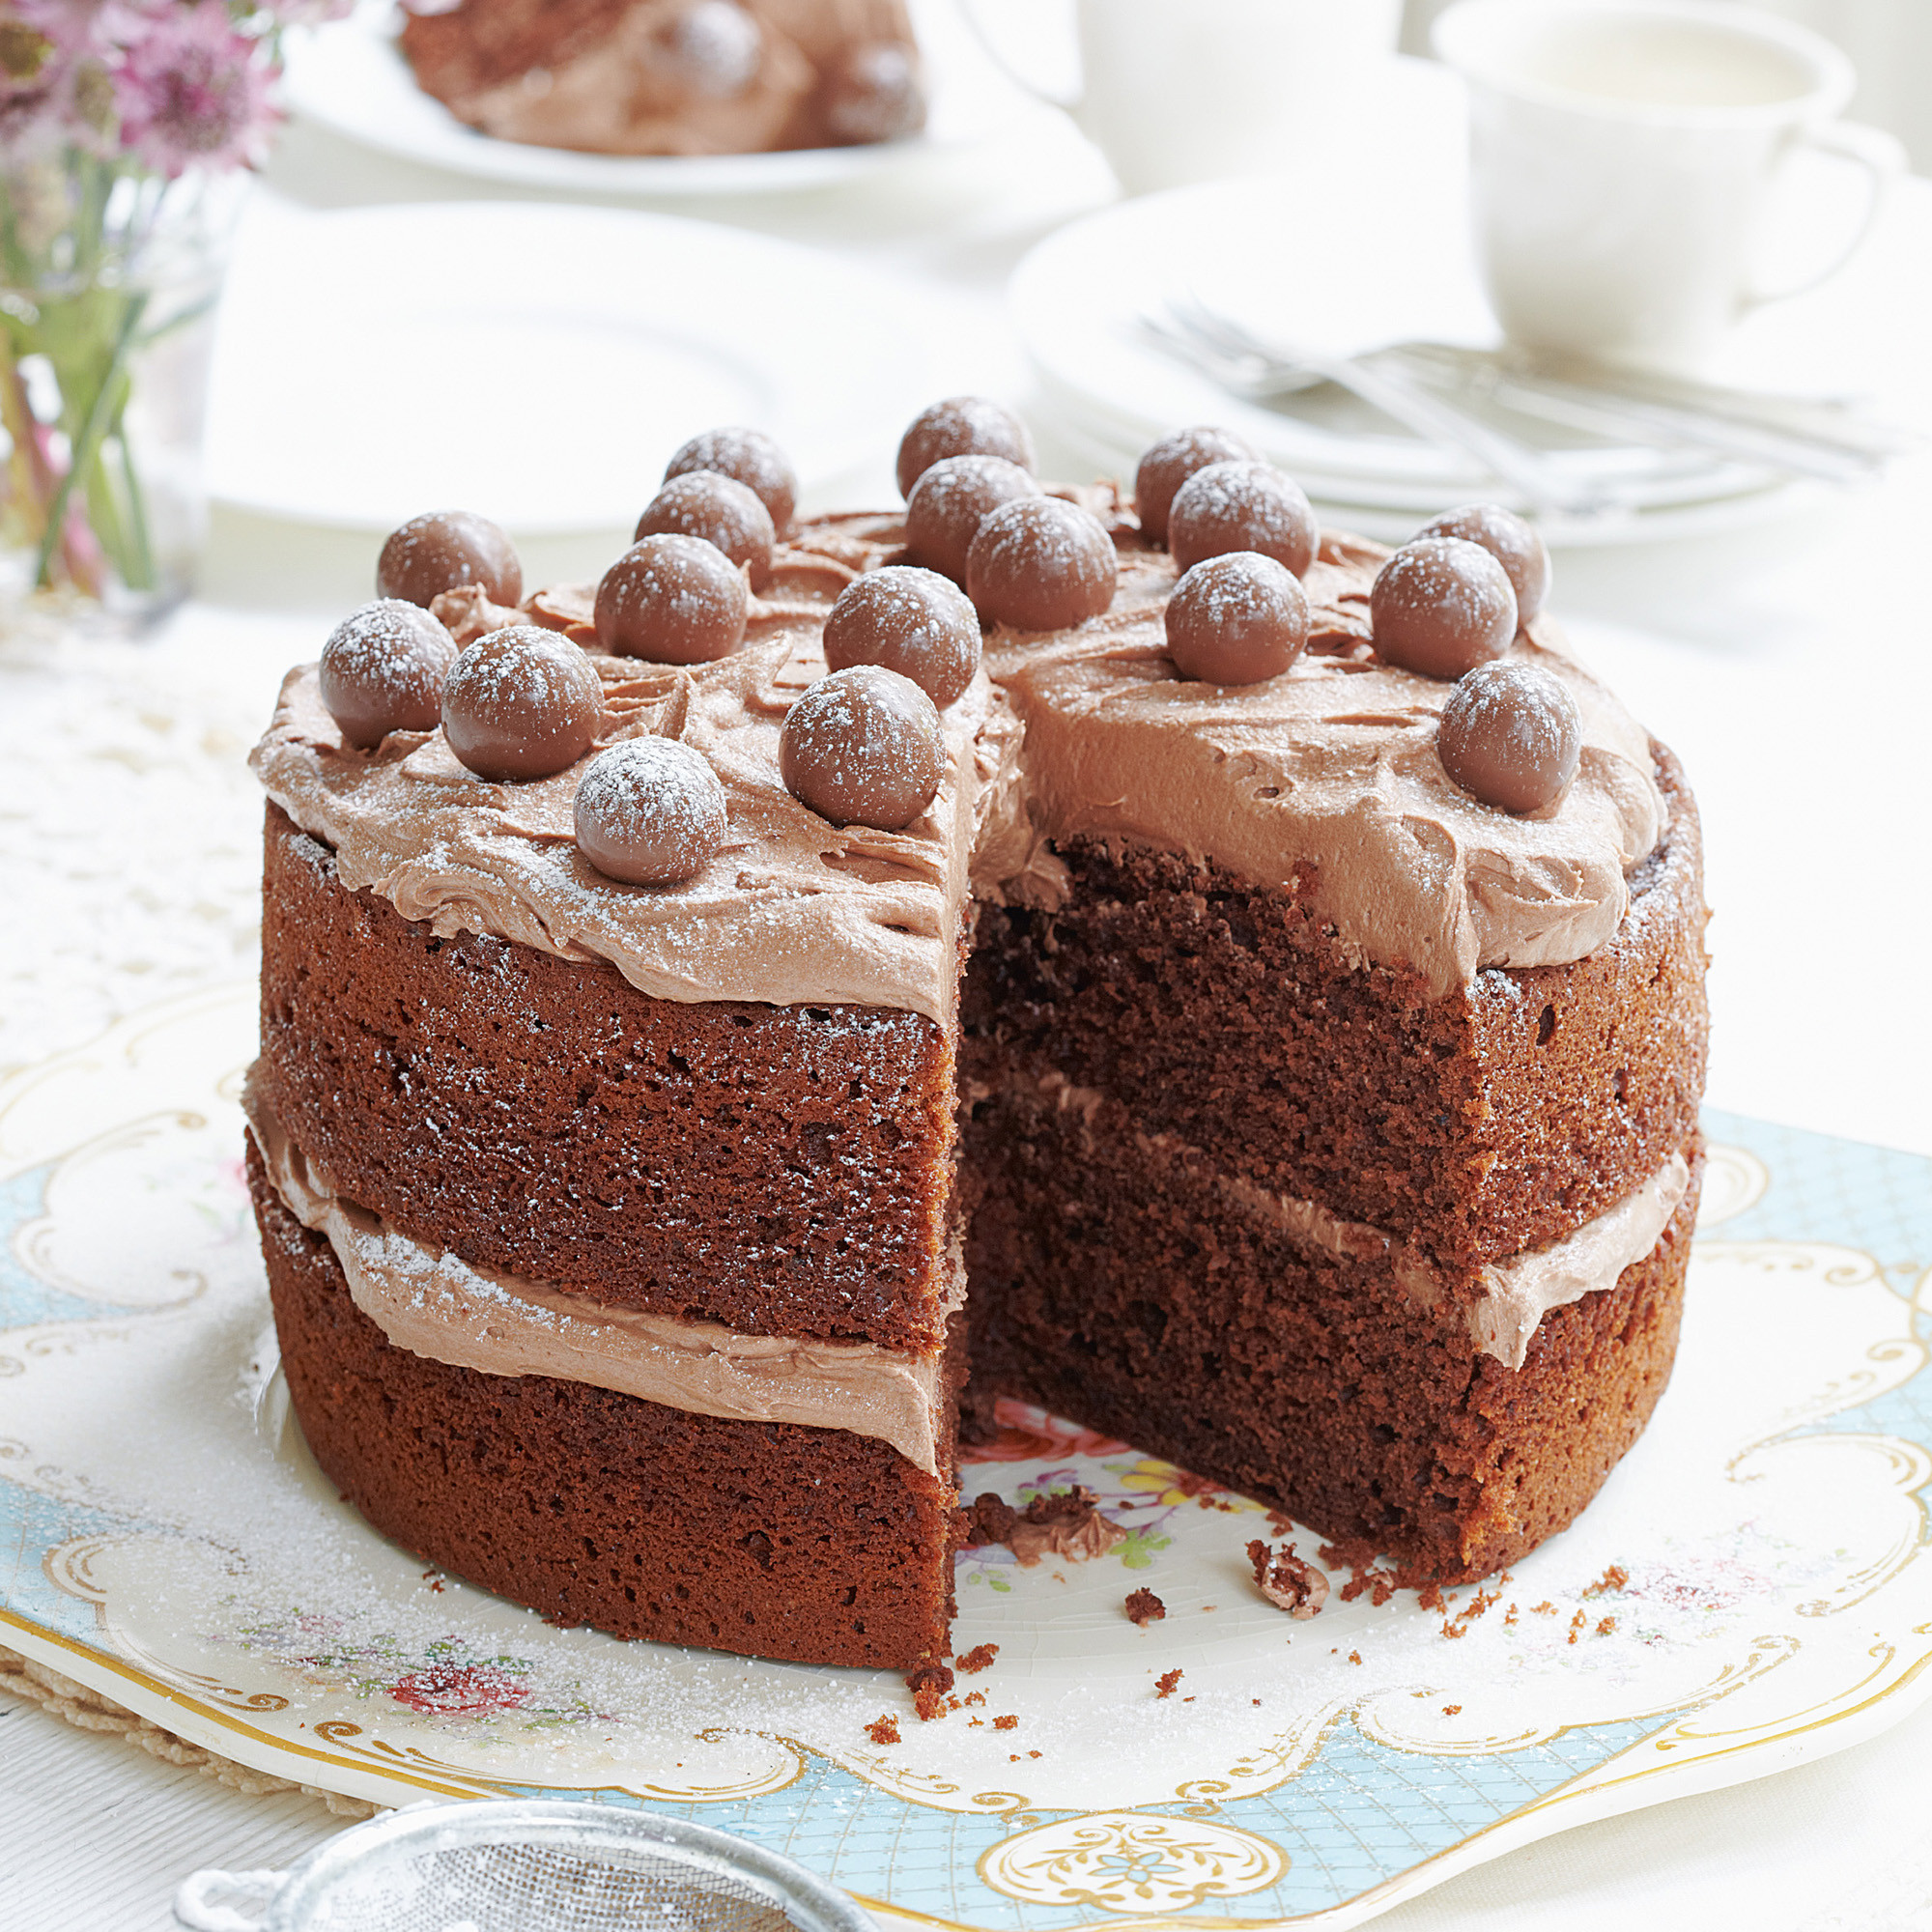 Christmas Desserts Mary Berry  Mary Berry recipes Malted Chocolate Cake Woman And Home